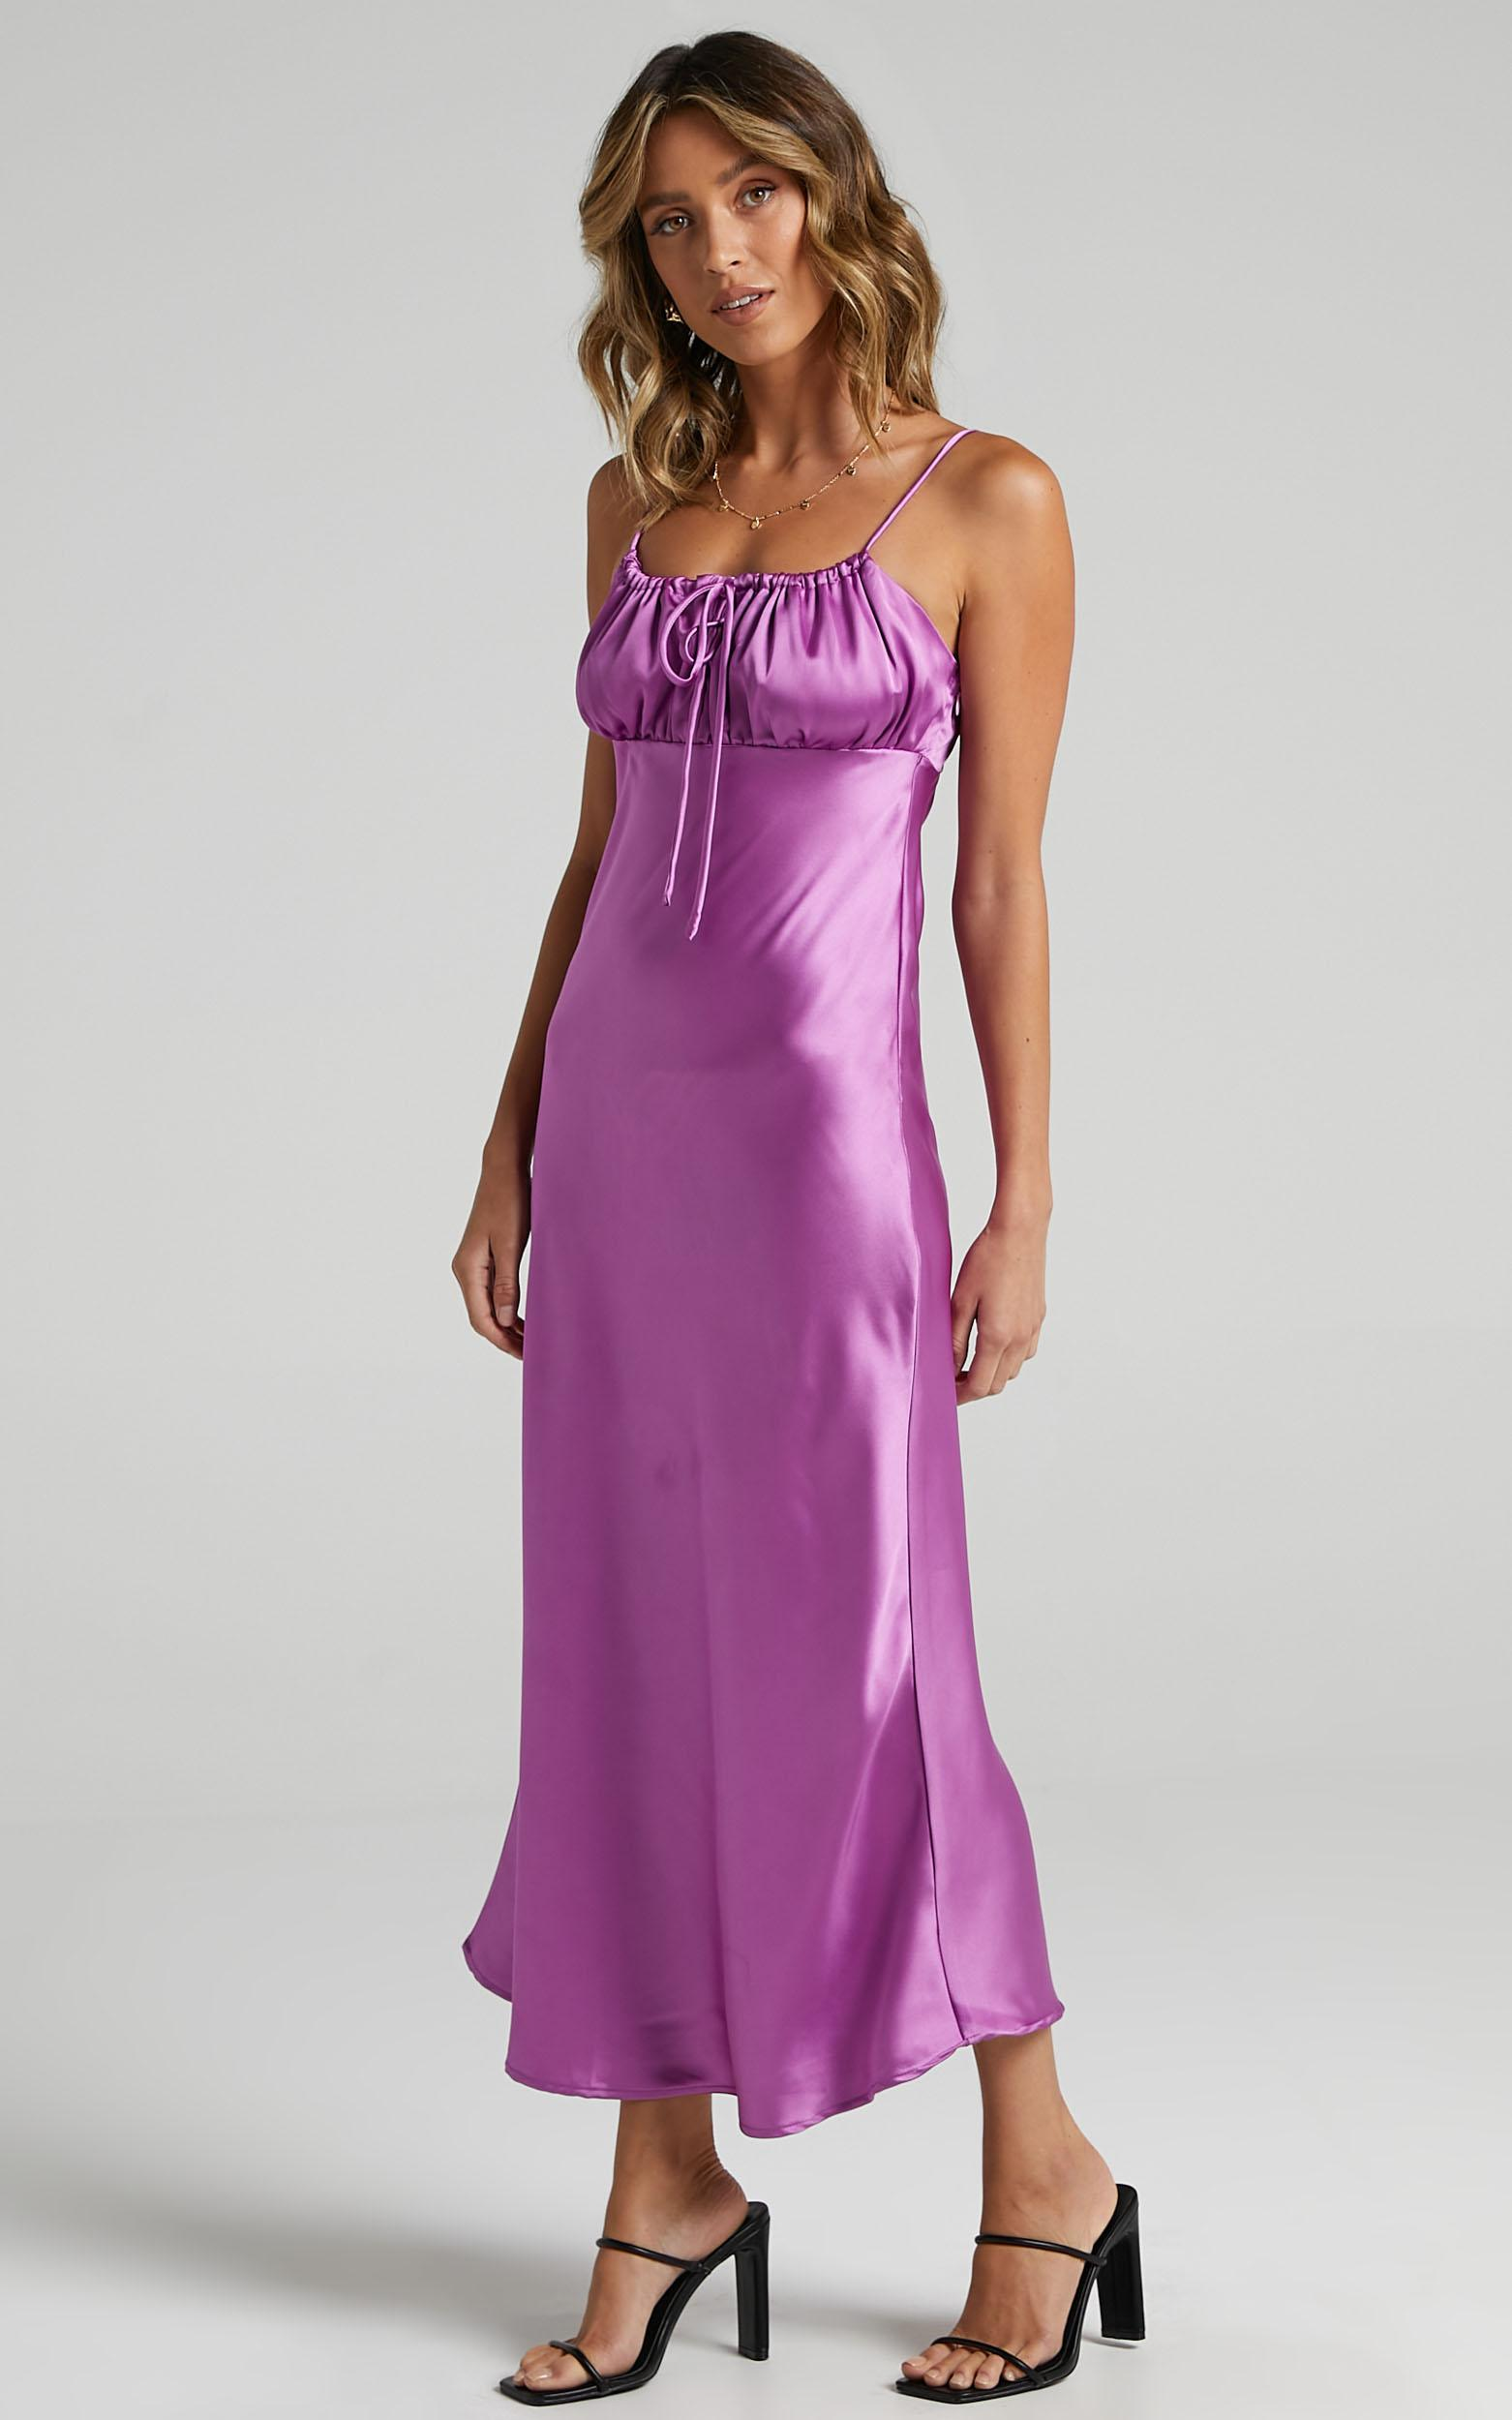 Blakely Dress in Orchid - 6 (XS), Purple, hi-res image number null